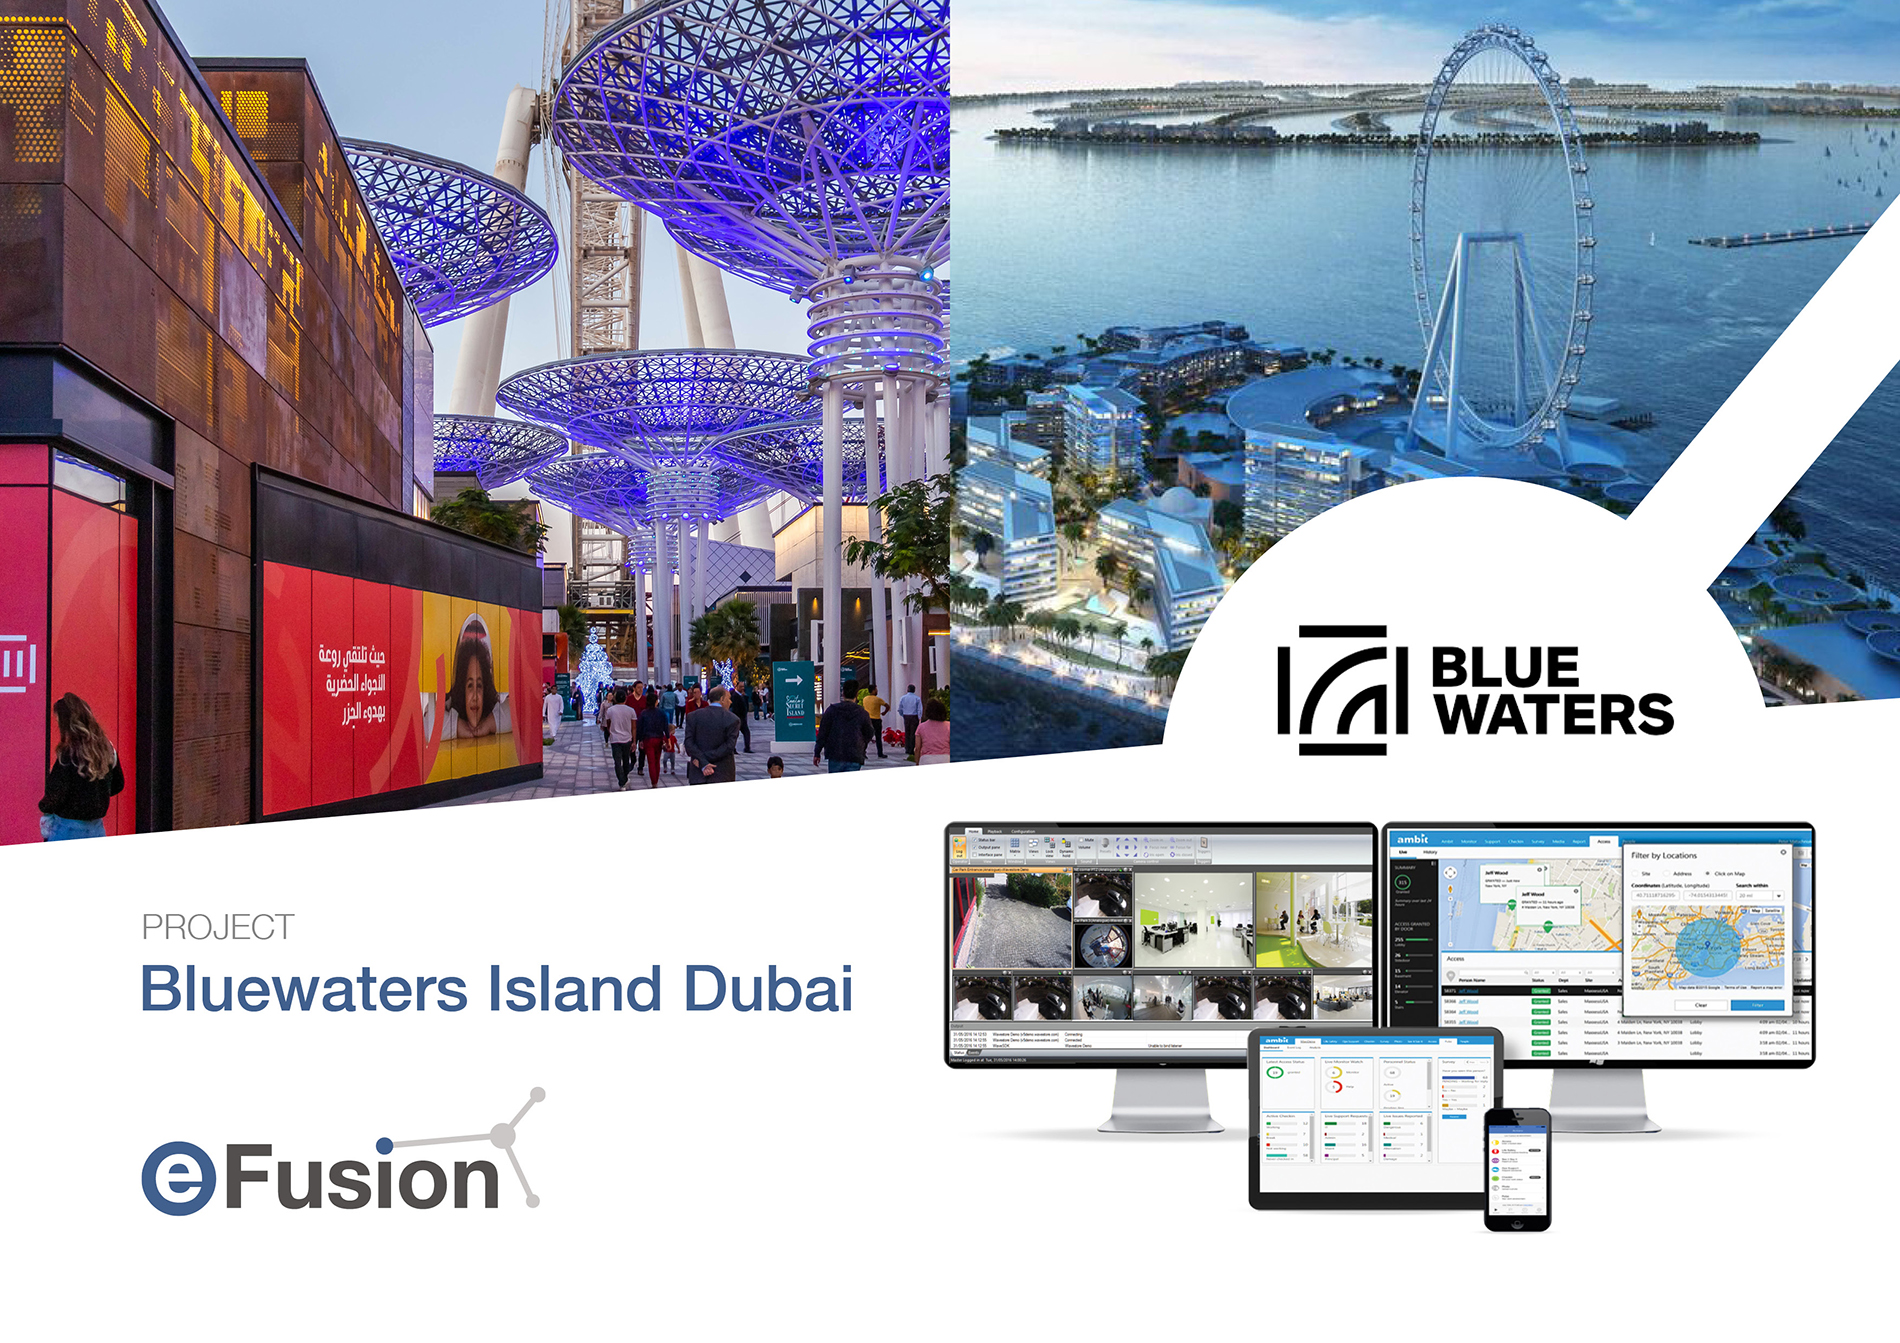 MAXXESS SYSTEMS, A Sustainable and Futureproof Integrated Maxxess Solution at Bluewaters Island